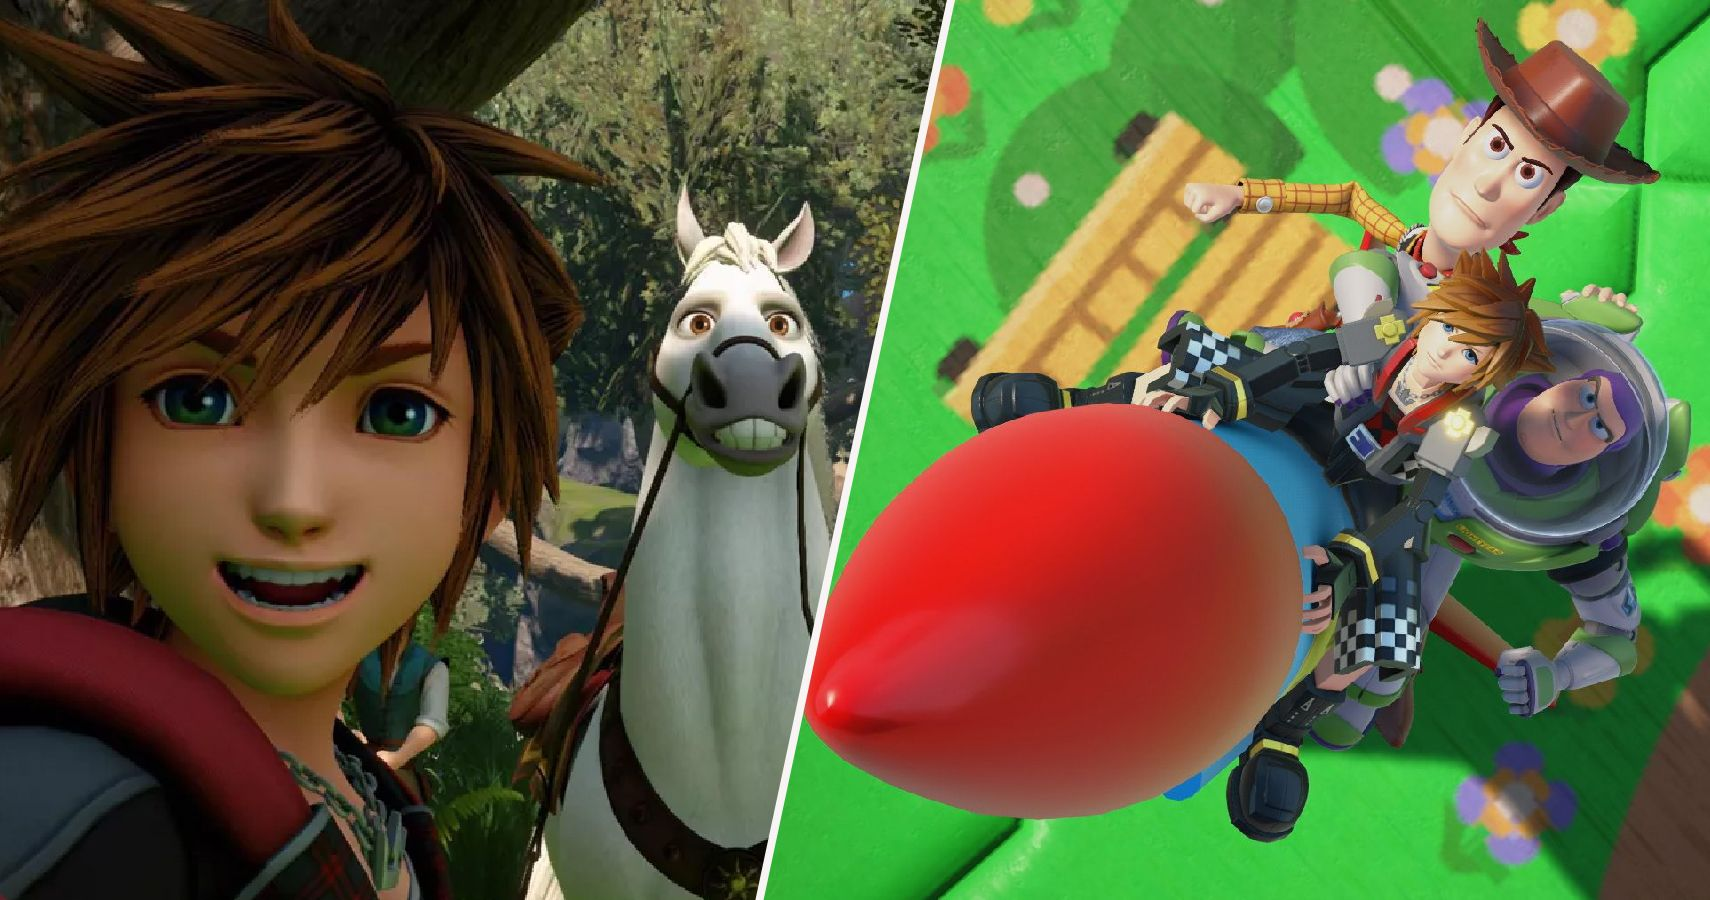 25 Unresolved Mysteries And Plot Holes Kingdom Hearts 3 Left Hanging